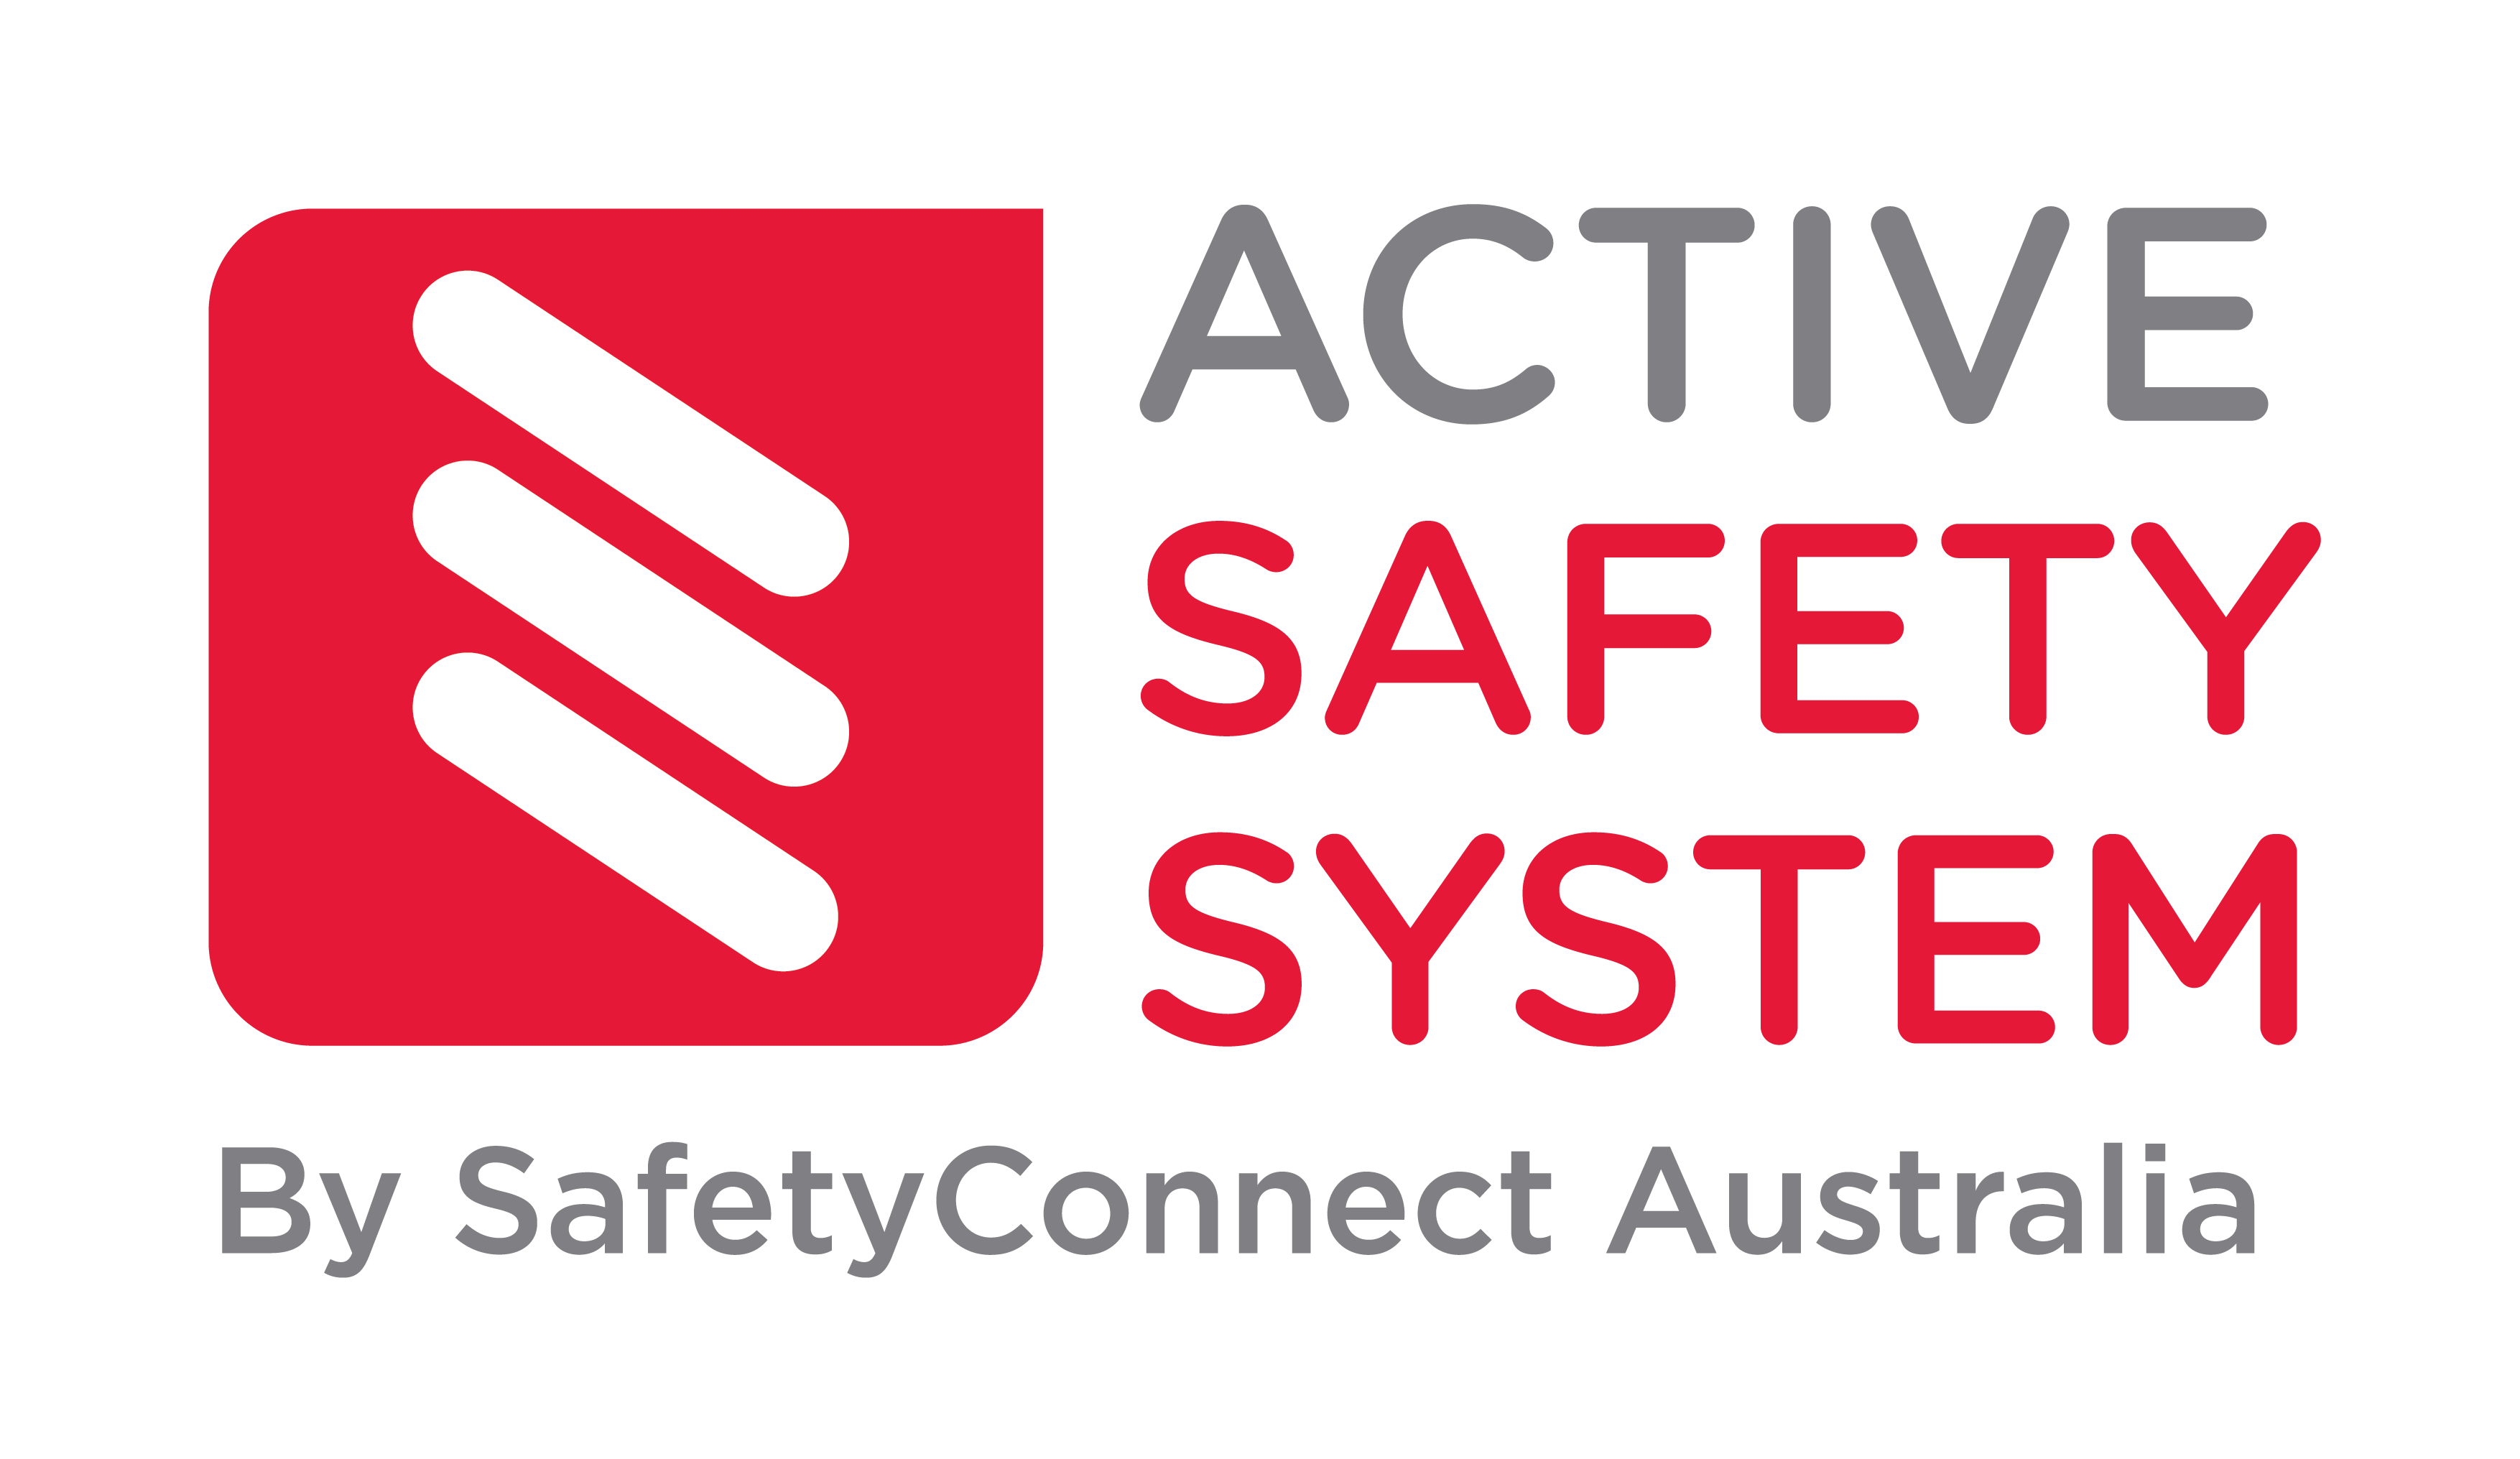 Active Safety Preferred logo